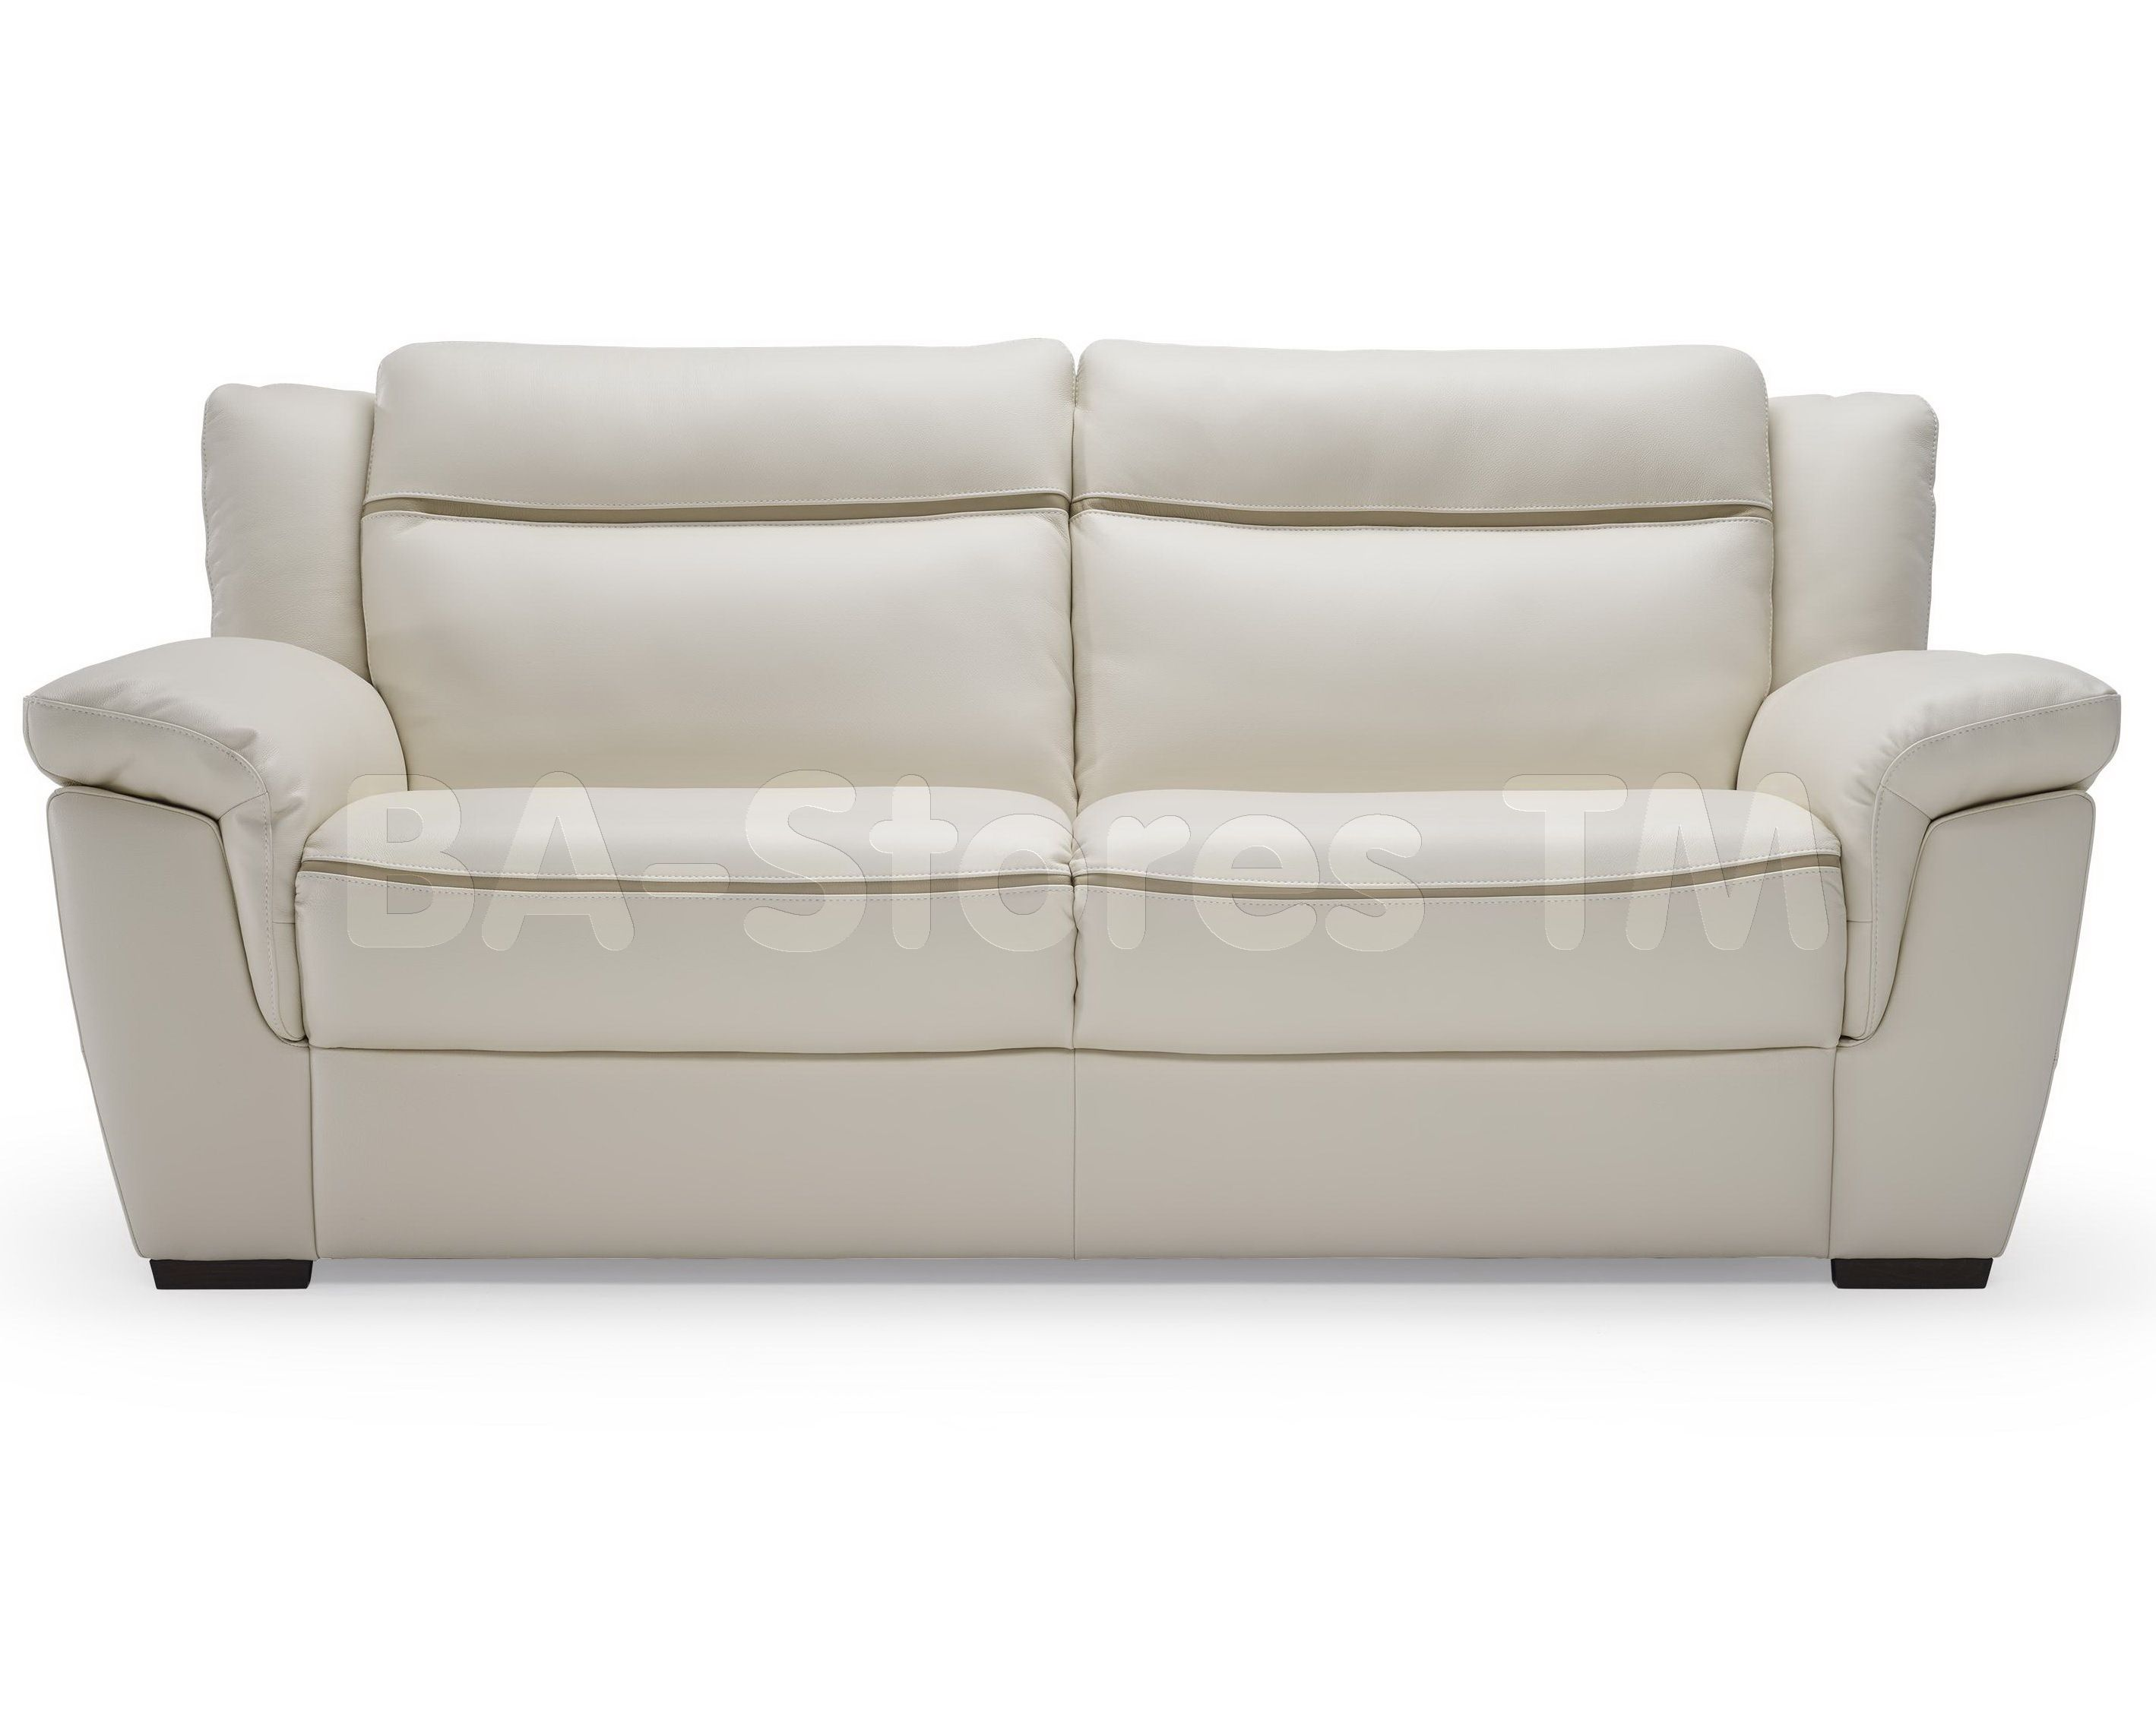 Natuzzi Editions Casual Contemporary Leather 2 Cushion Sofa B865 ...